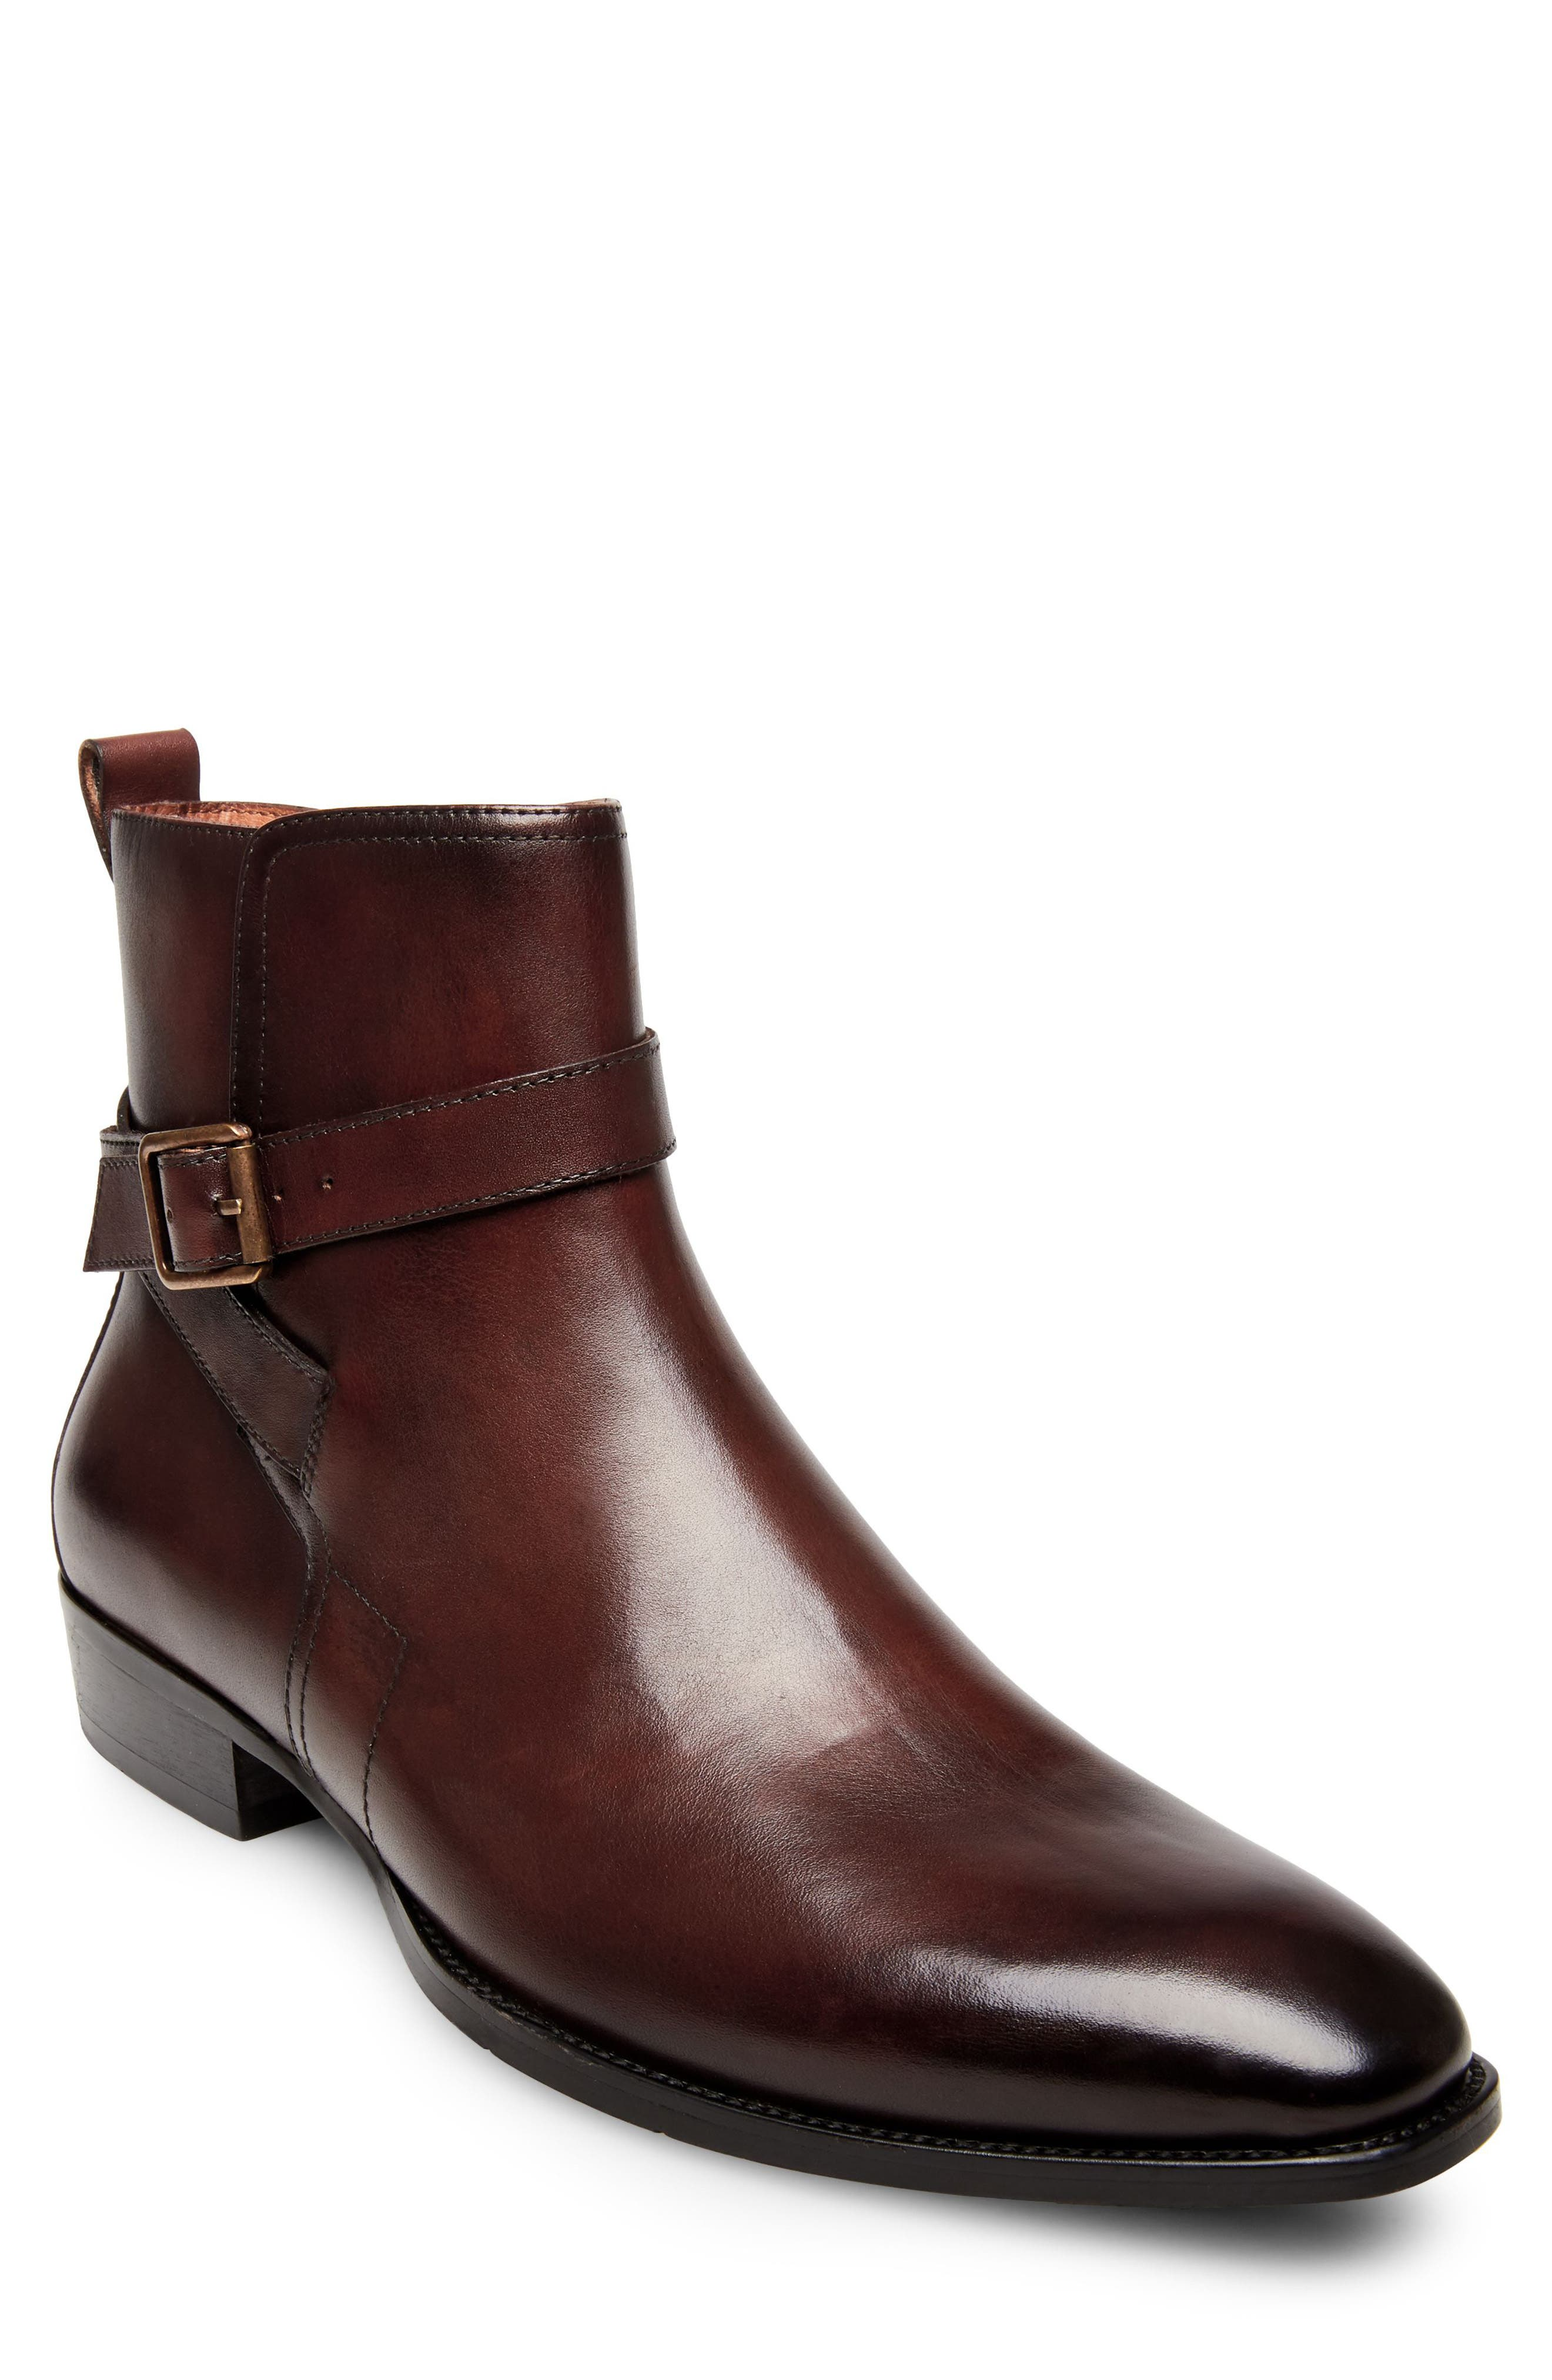 Sacha Buckle Strap Boot,                         Main,                         color, Brown Leather